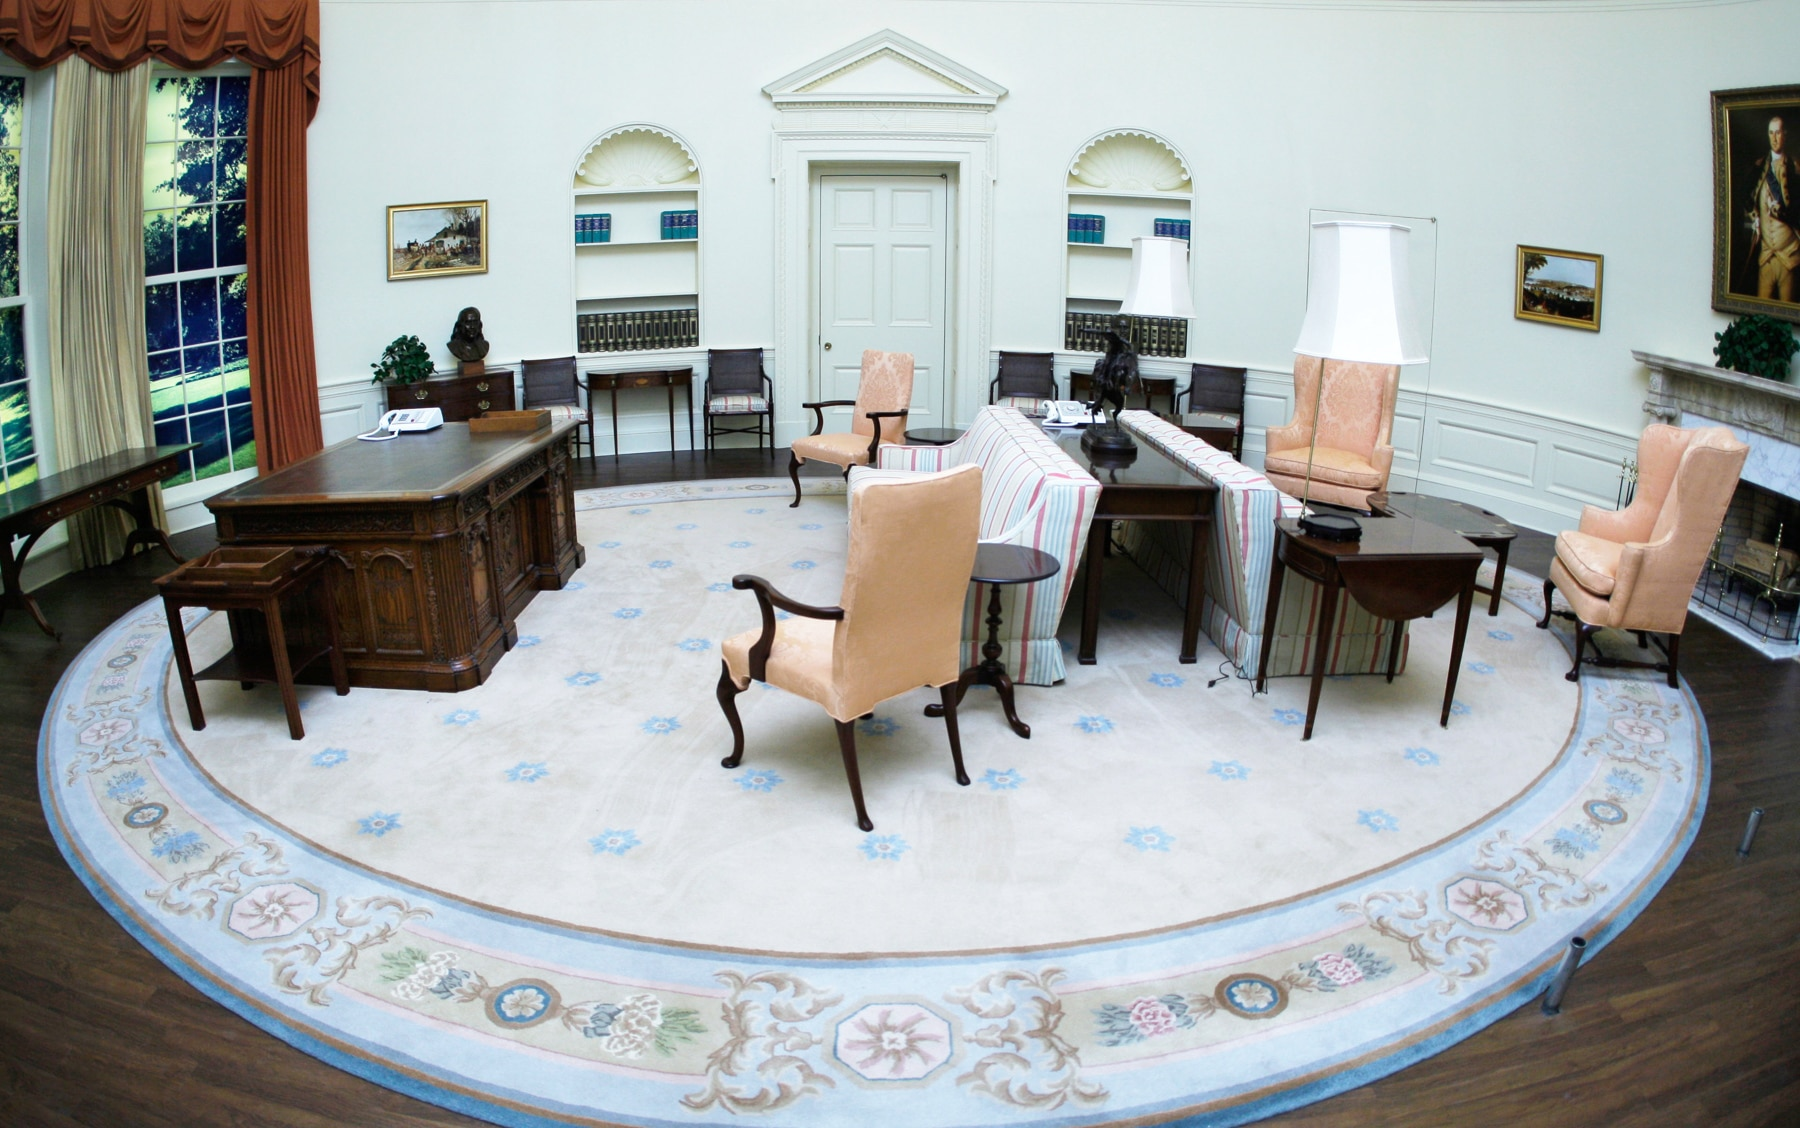 Oval room with period furniture (© John Bazemore/AP Images)